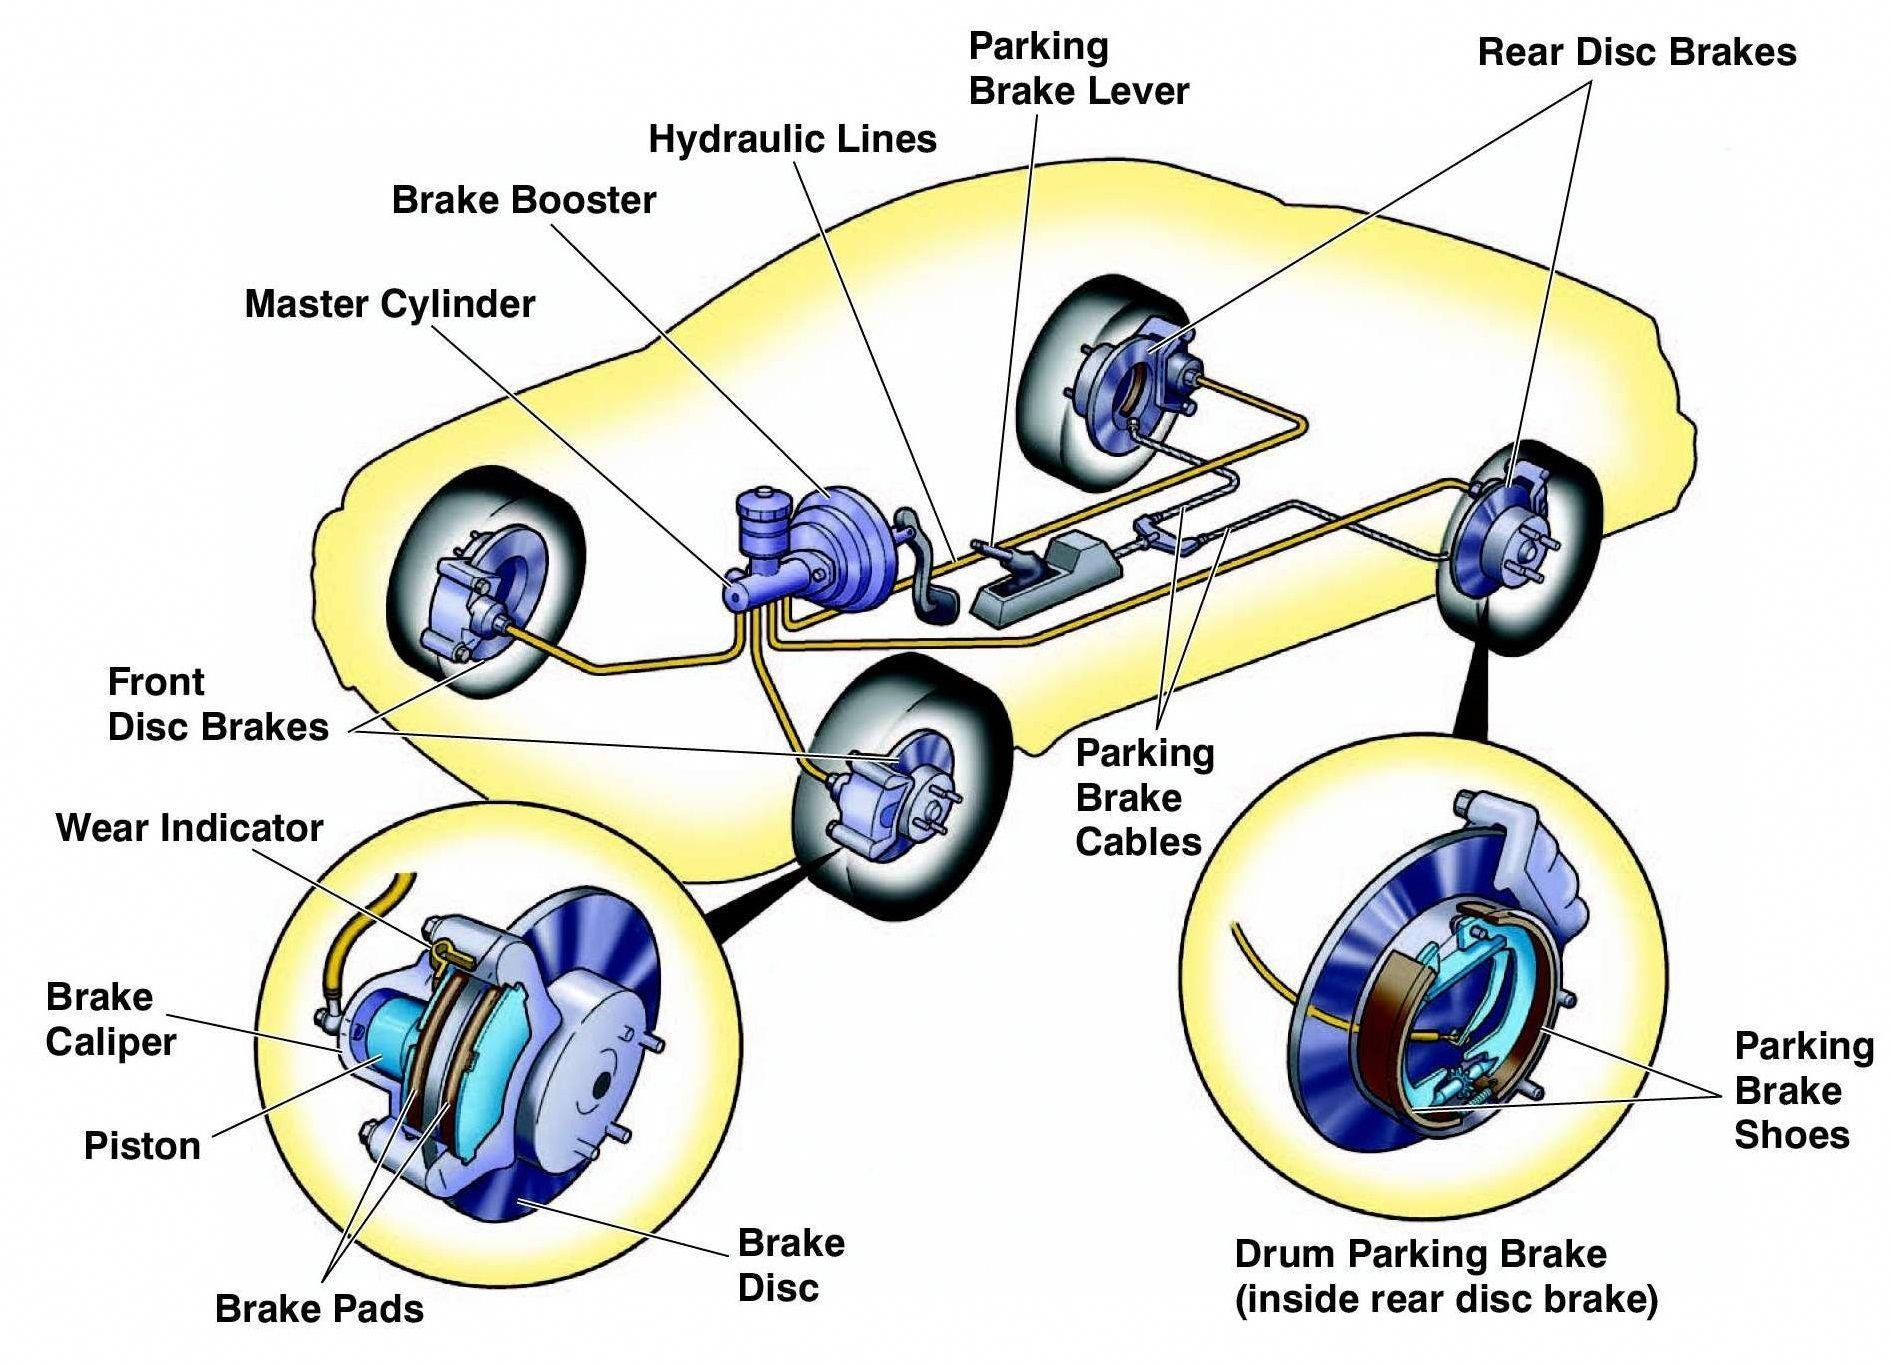 Diagram Of Car Brakes Pin by Twenty Four Diagnostics On Car Care Repair and Of Diagram Of Car Brakes